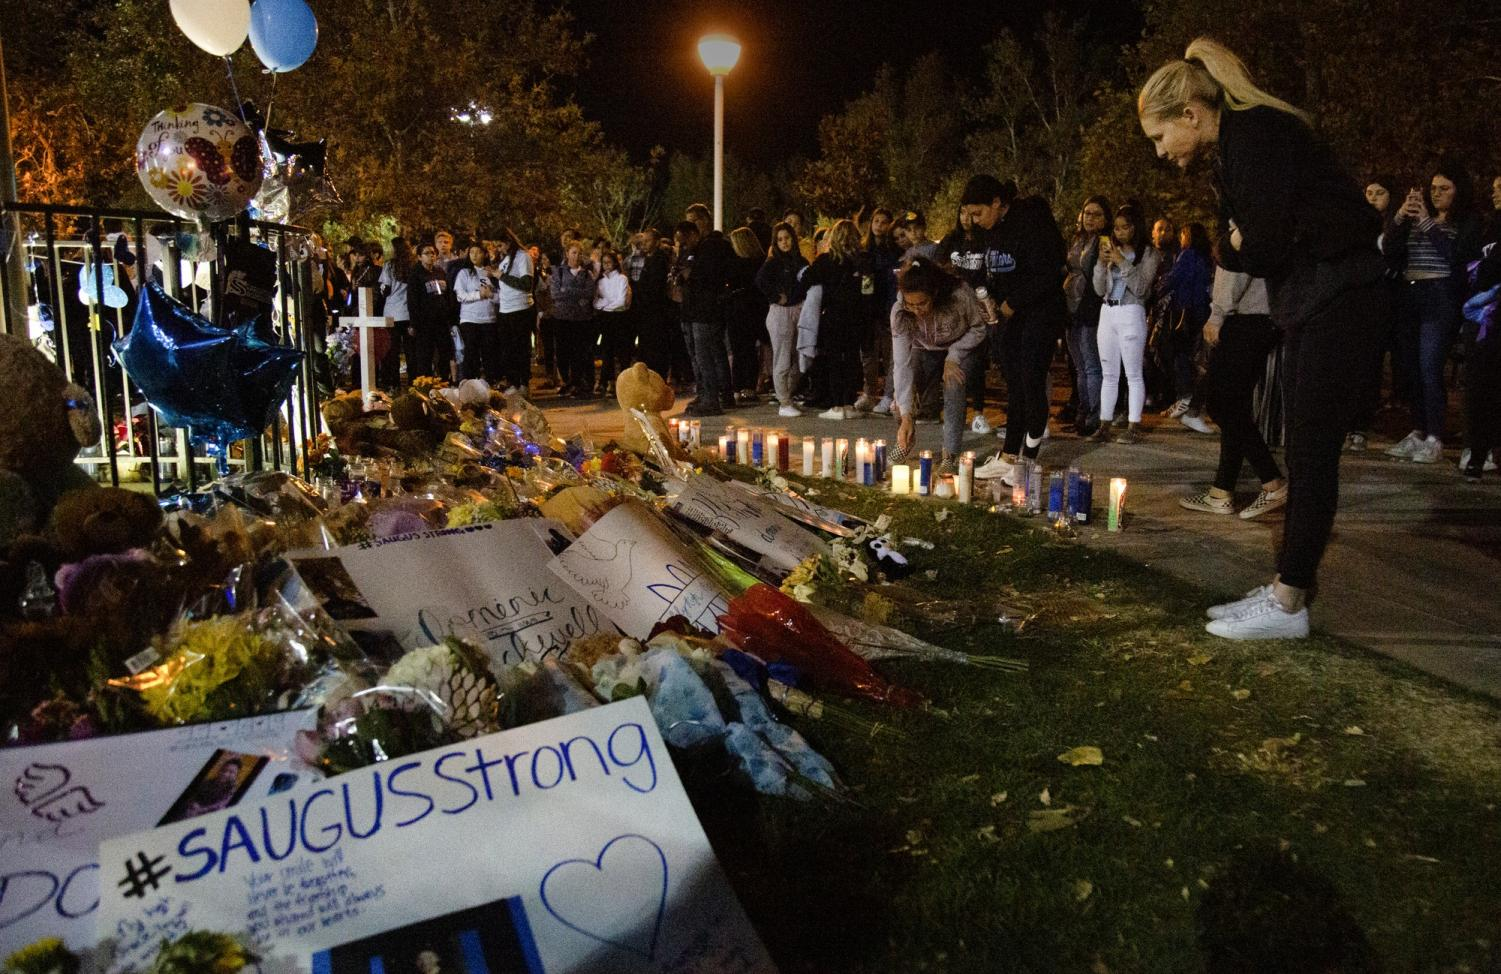 Students gather around the memorial, which circled around the flagpole, on Nov. 17 at Central Park in Saugus to place candles and other memorabilia in support of the community and the deceased after the shooting two days prior. Photo credit: Shae Hammond